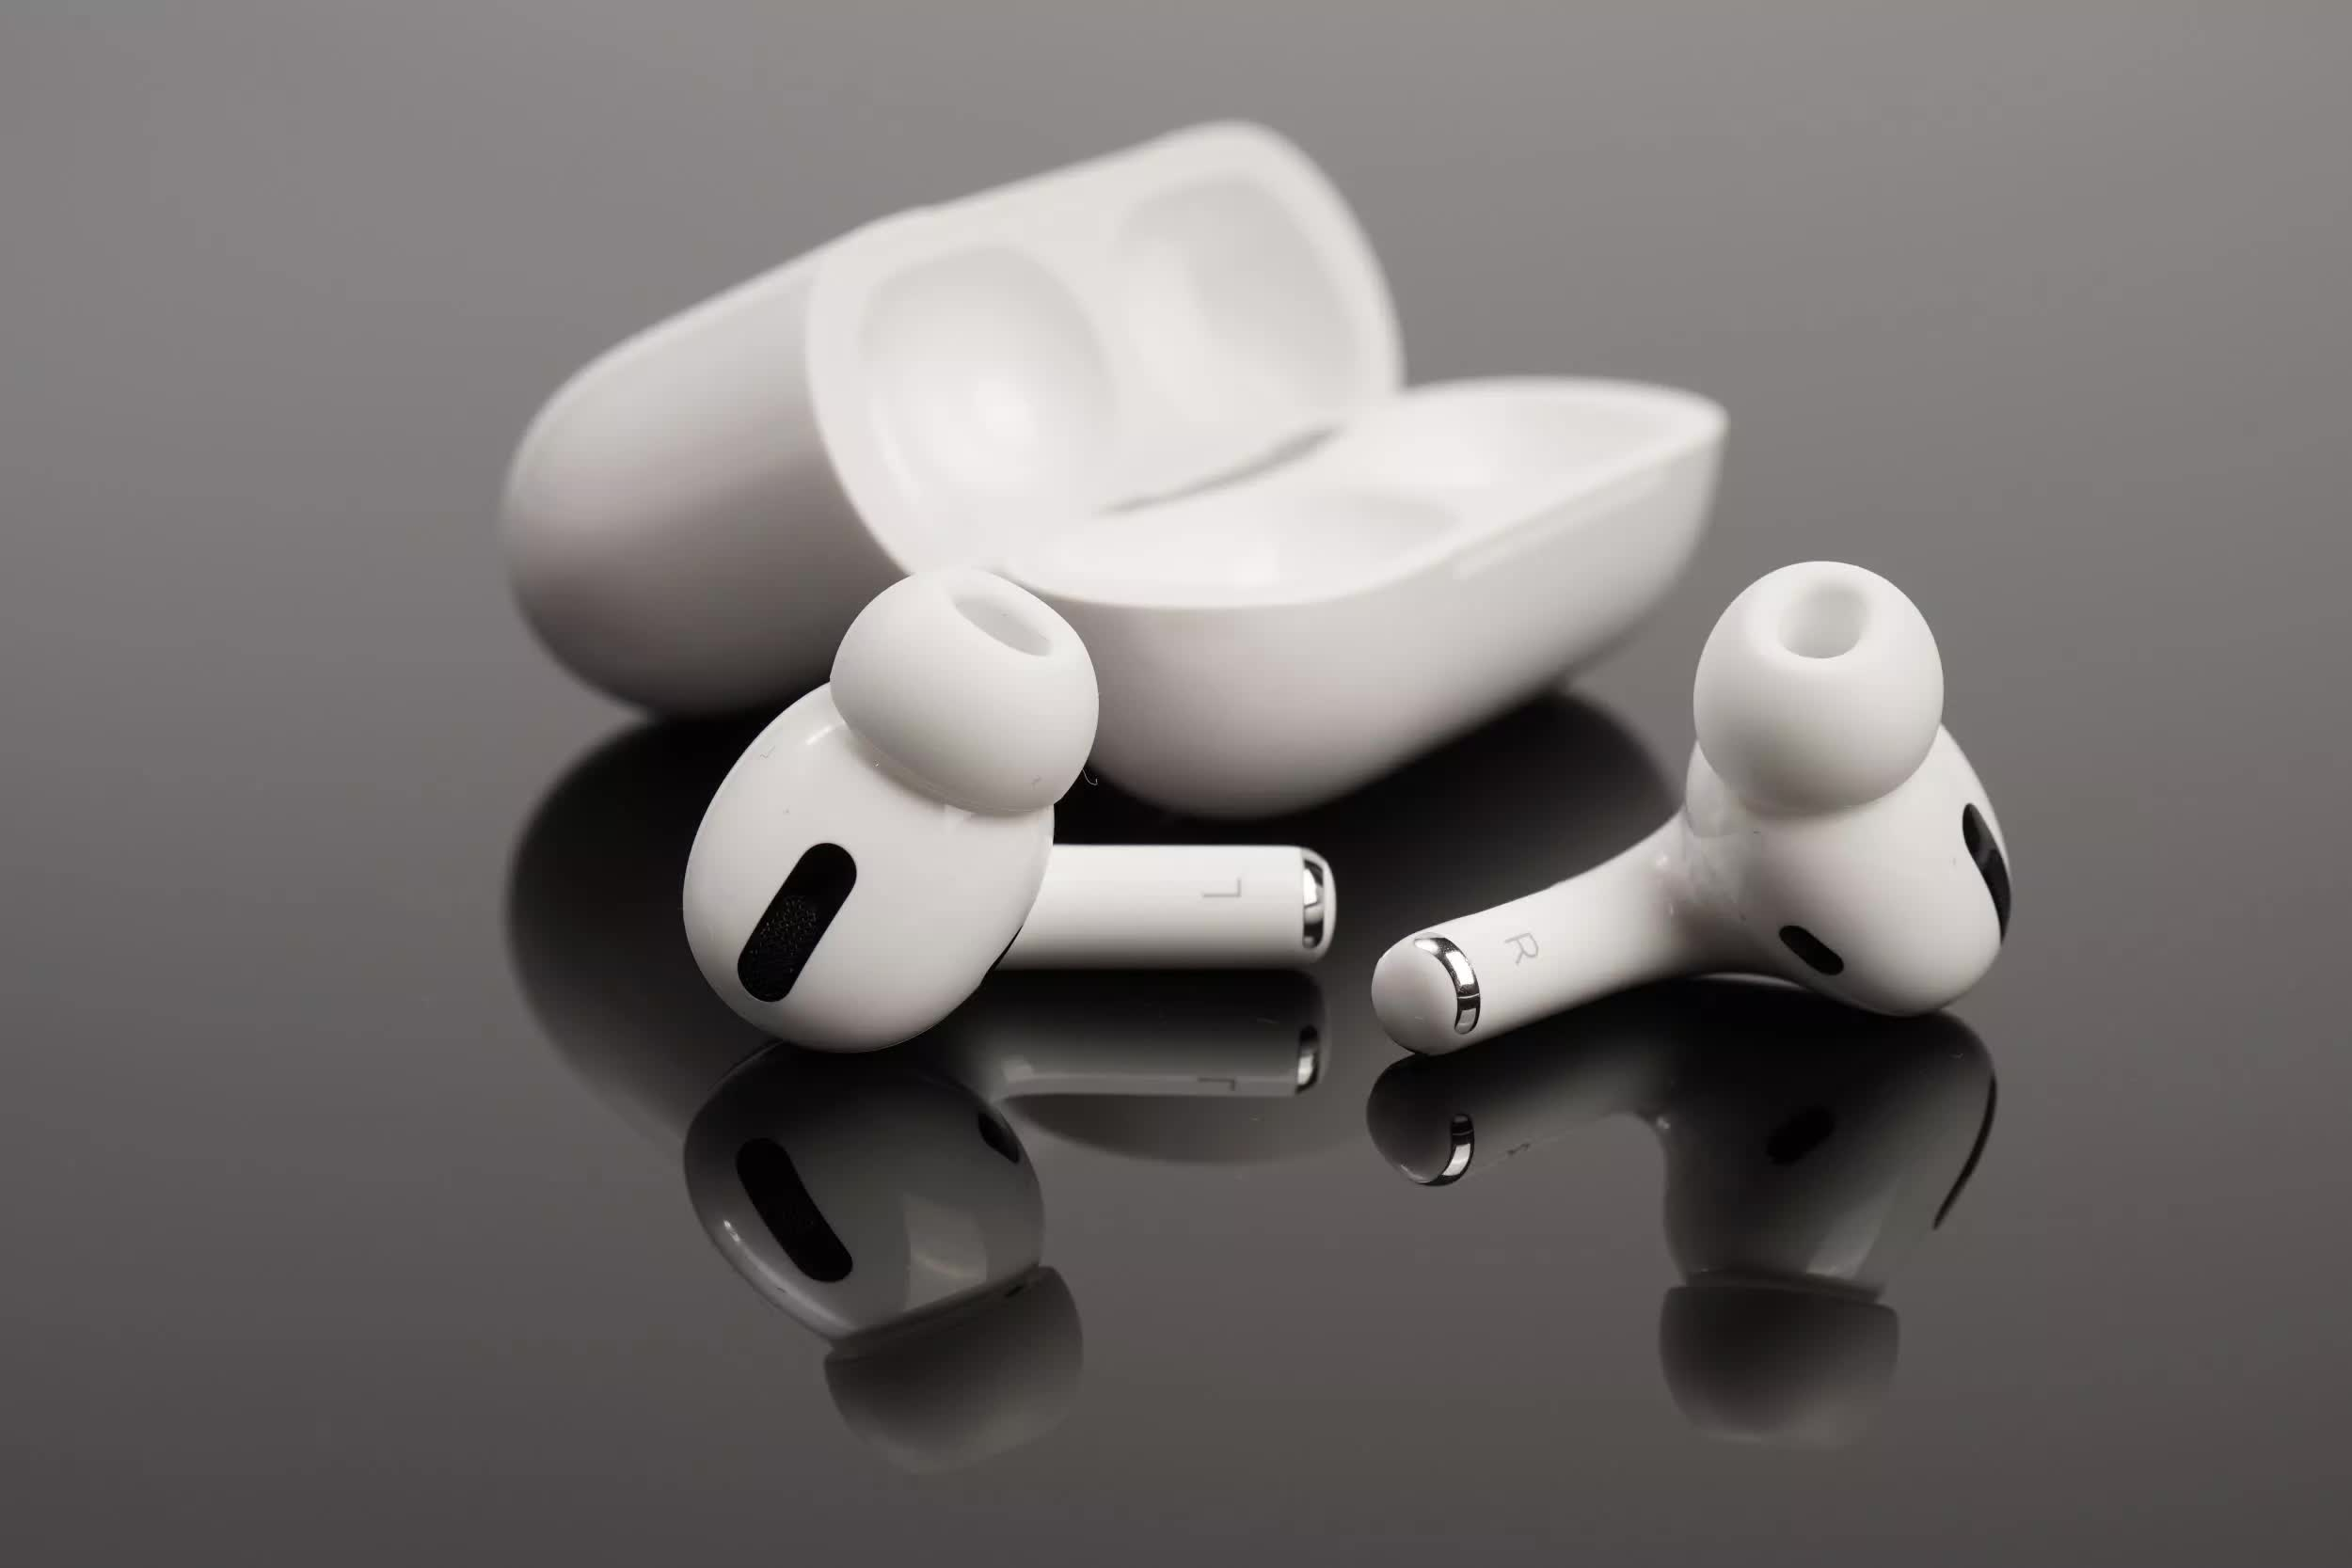 Apple rumored to unveil AirPods 3 alongside iPhone 13 at September event